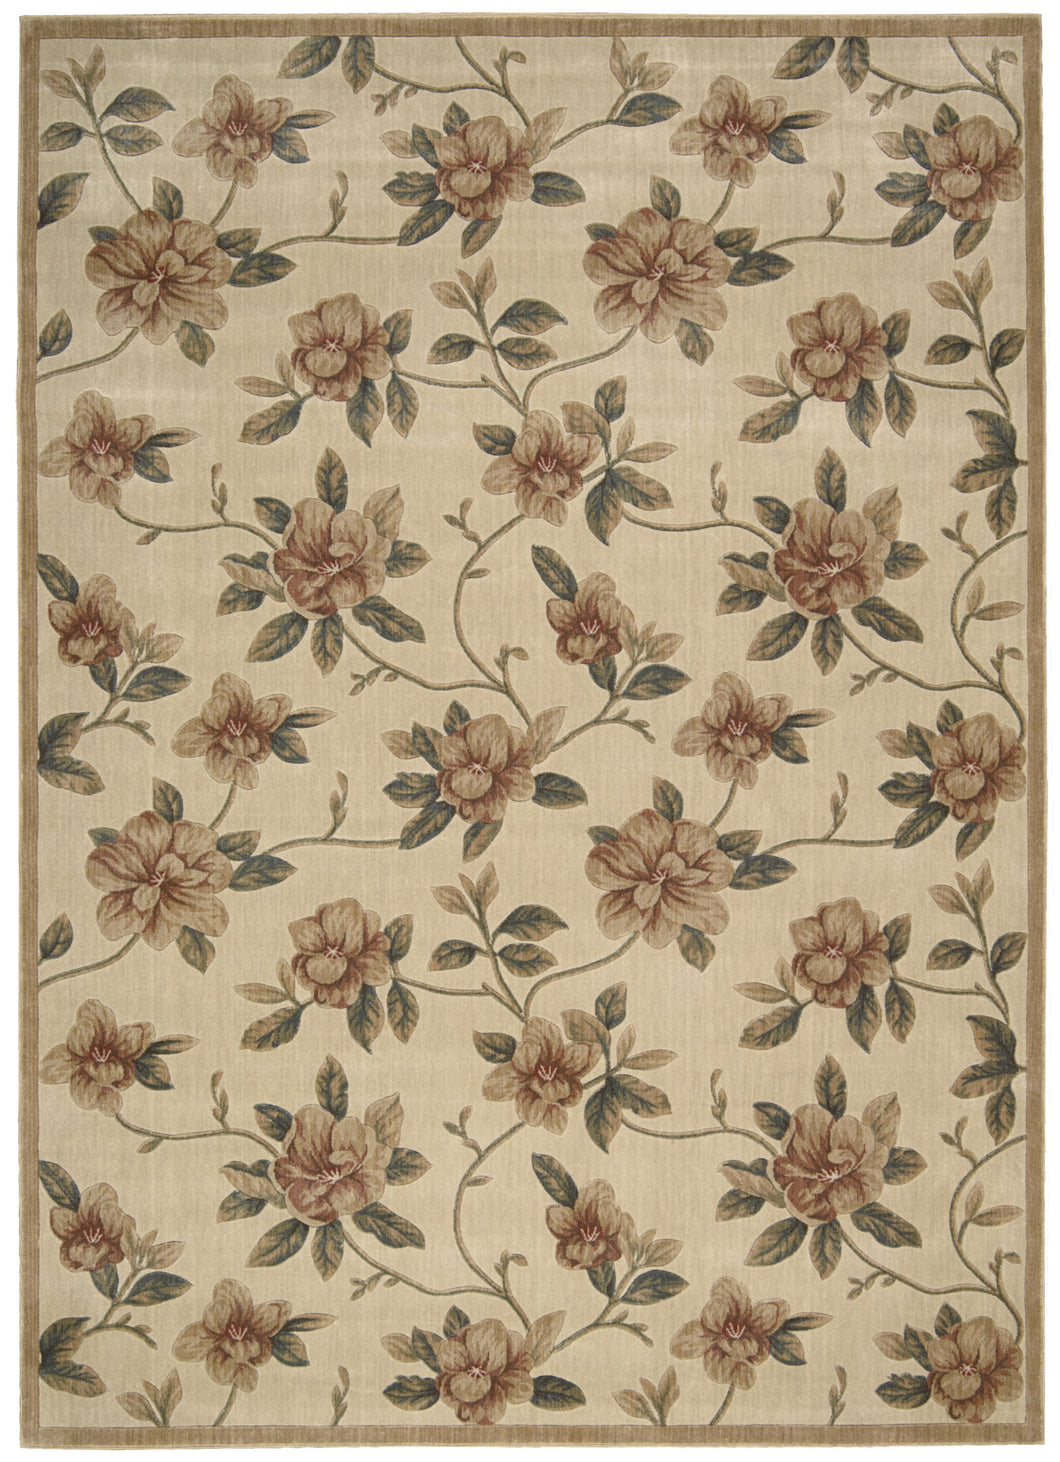 Nourison Cambridge Ivory Area Rug CG08 IV